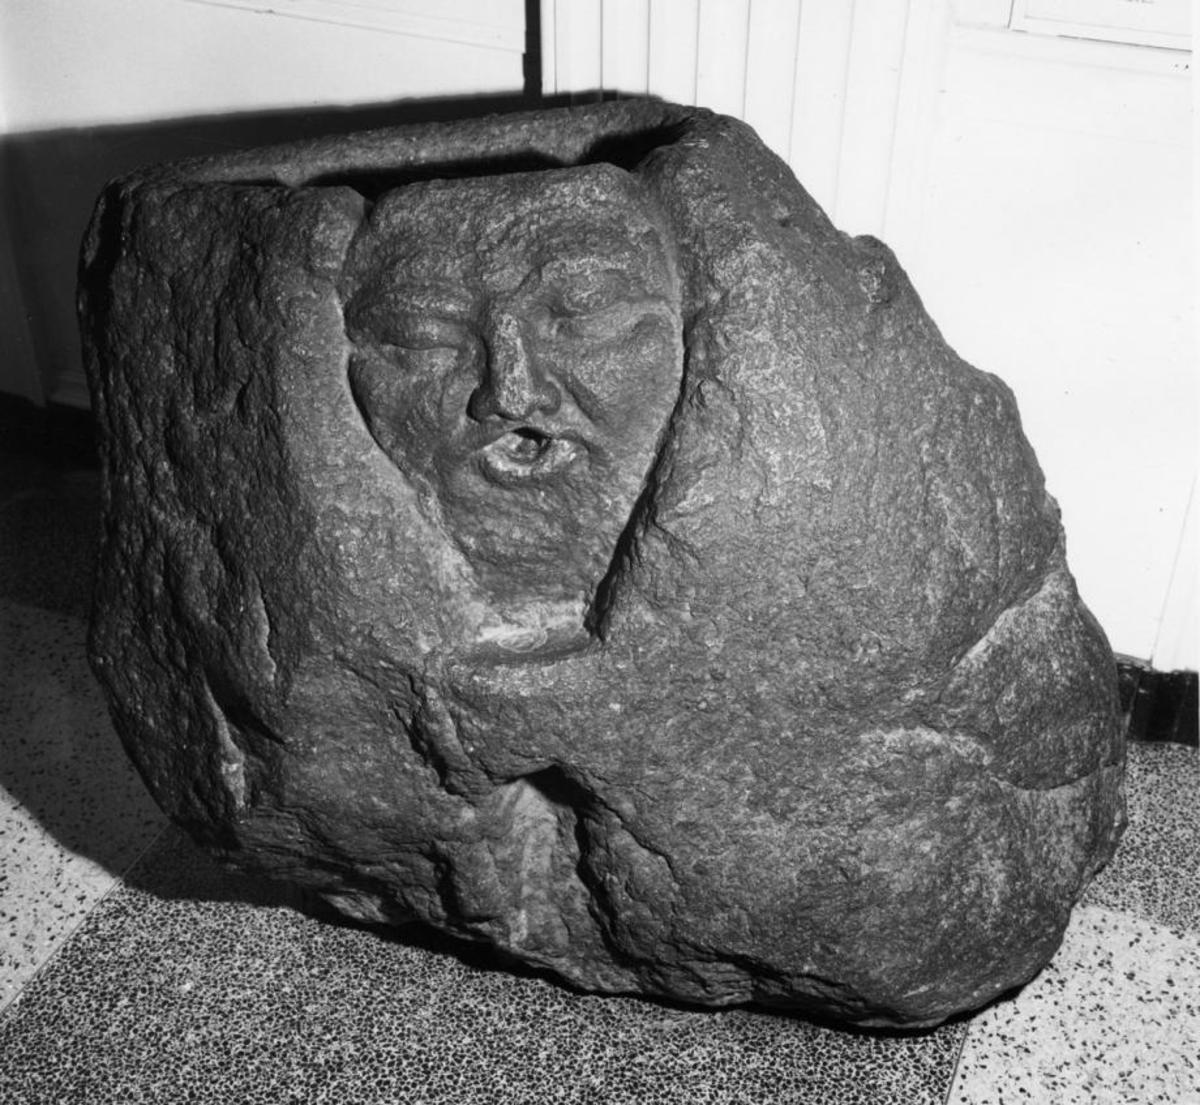 This ancient Phoenician stone found in Minnesota shows the hollow bassinet at the top used for infanticide ritual sacrifice.